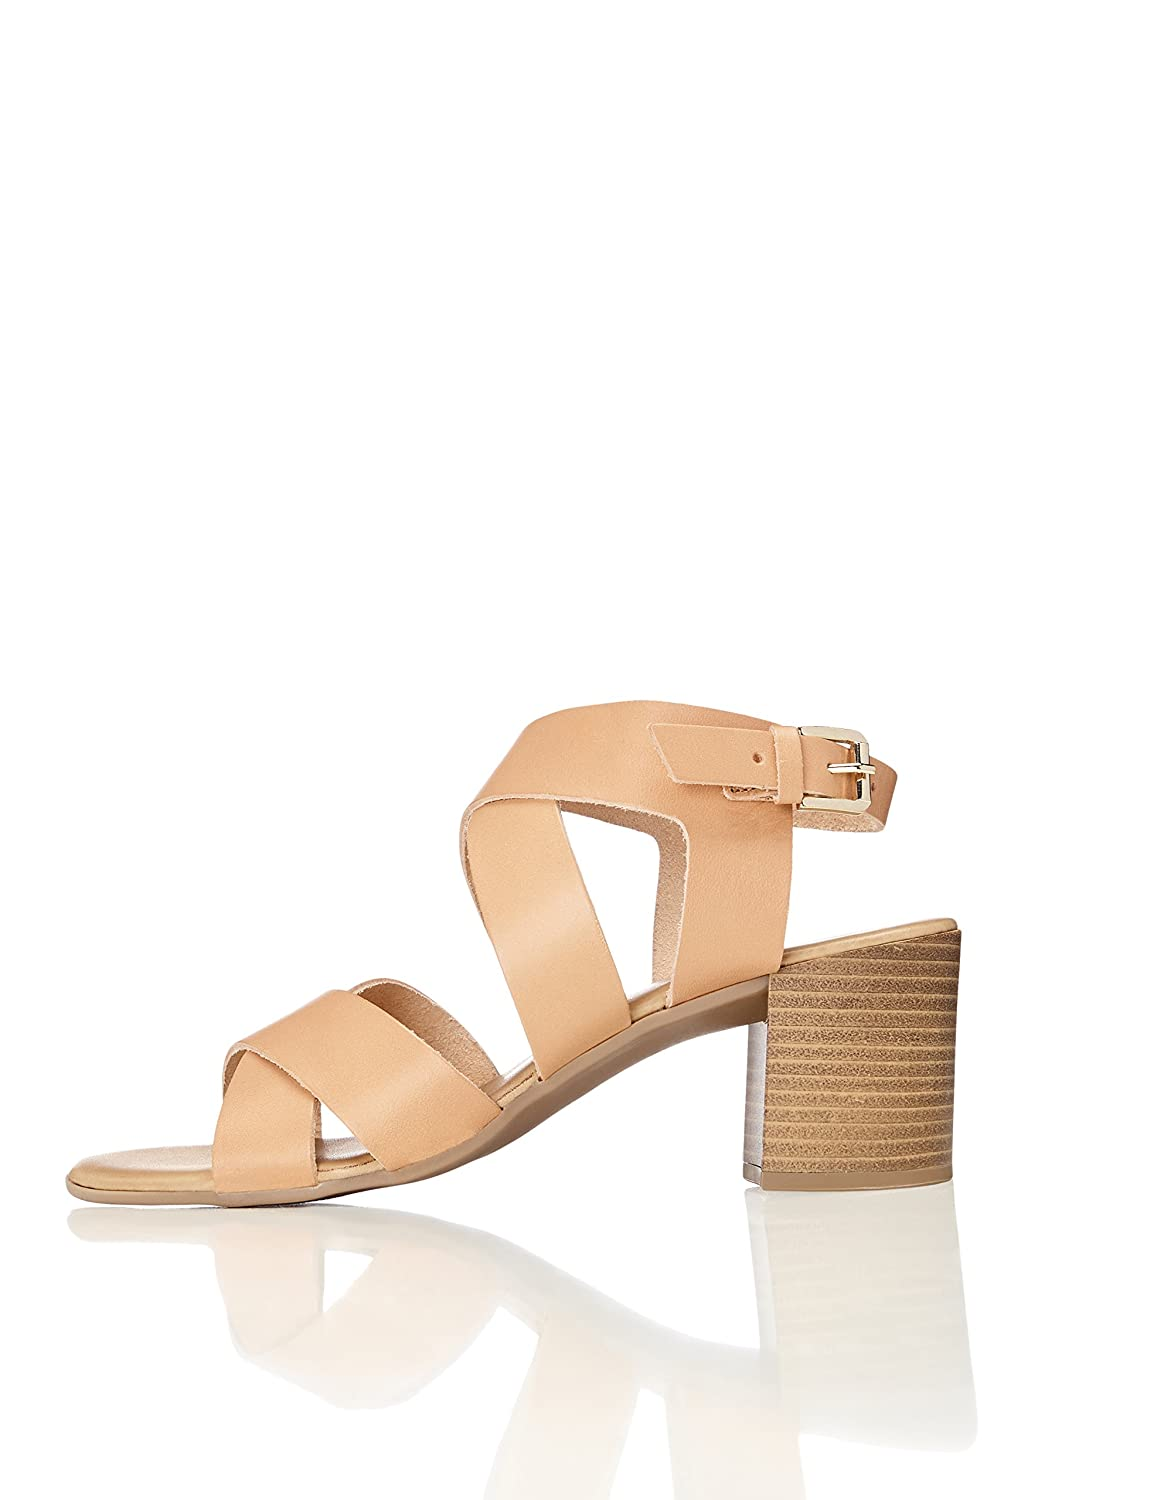 Find Mid Heel, Women's Ankle Strap Sandals by